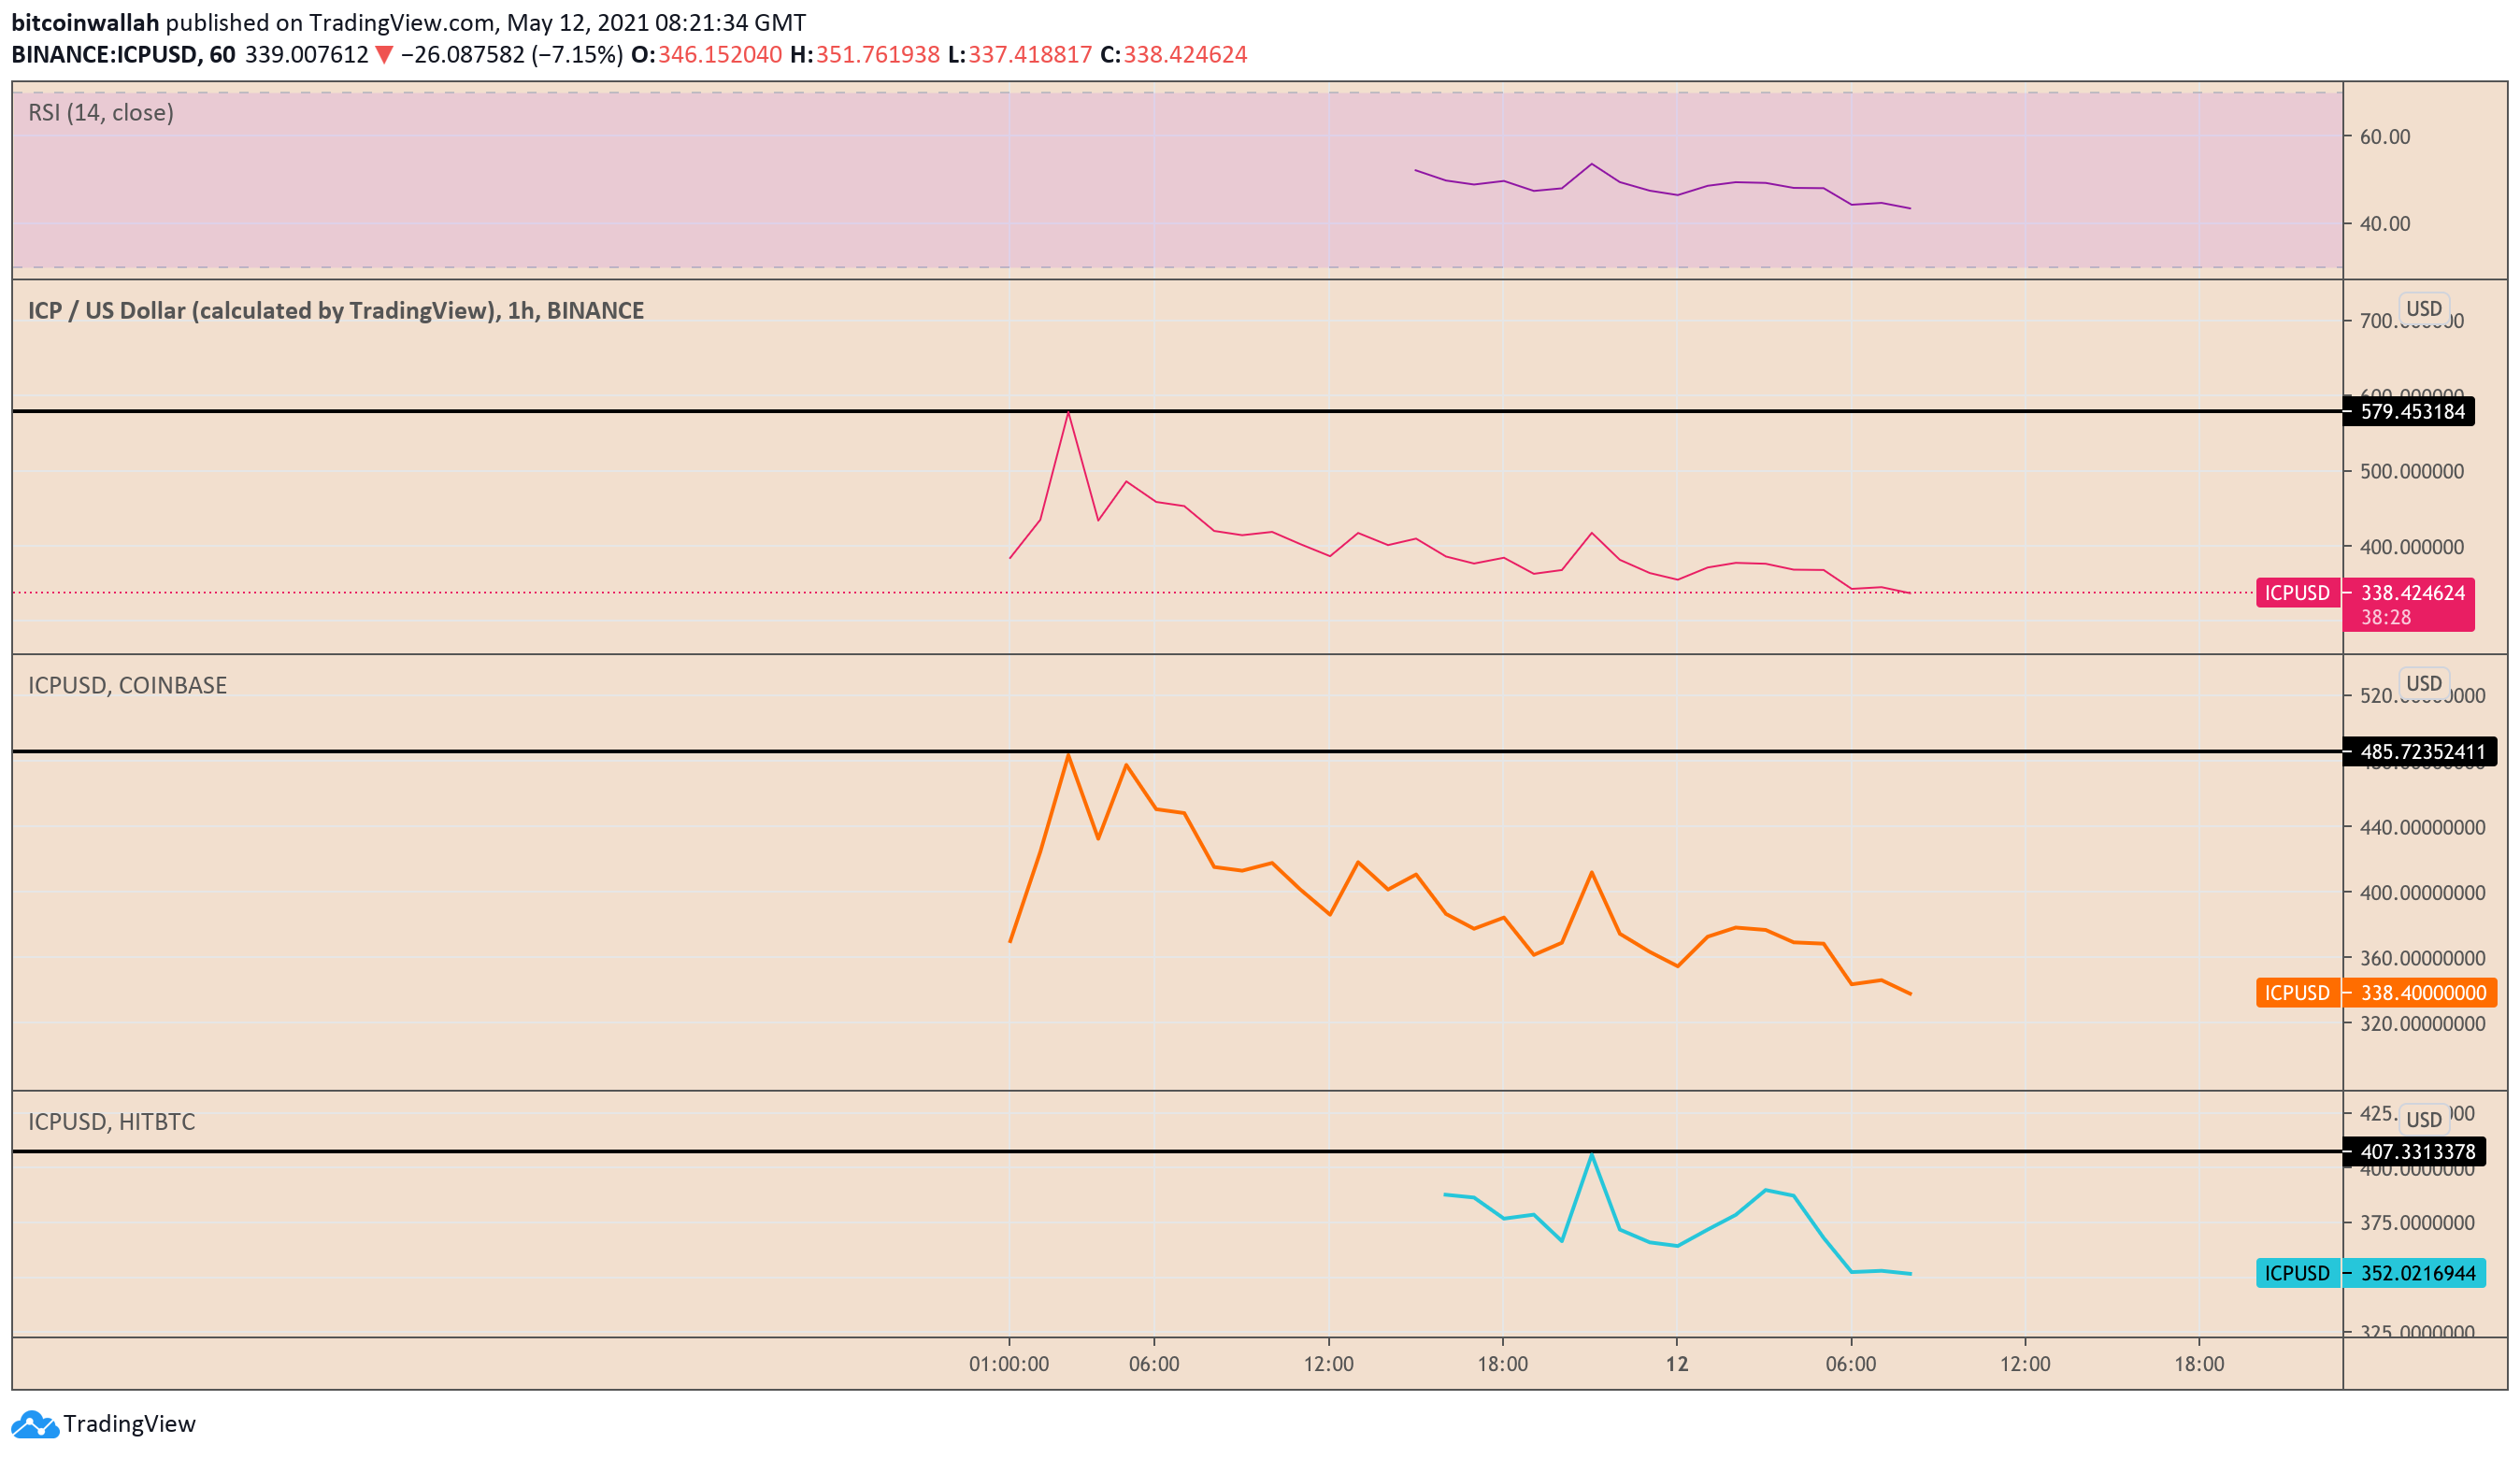 ICP 1-hour candle close across multiple crypto exchanges. Source: TradingView